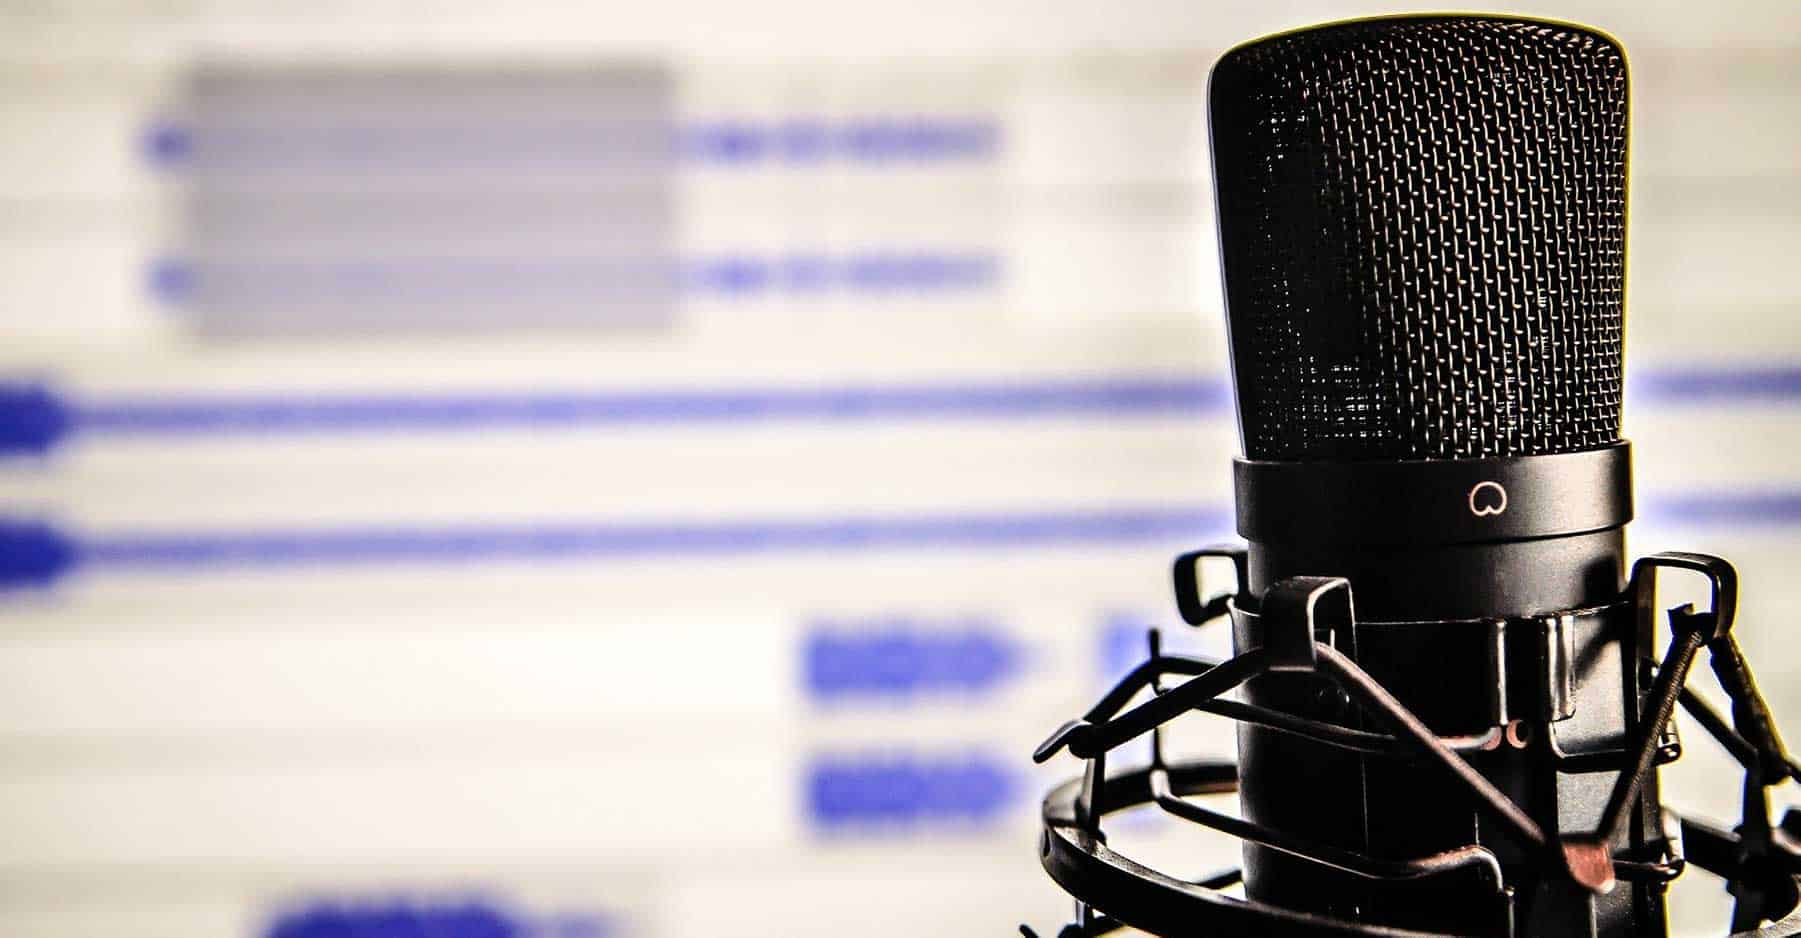 Get Paid to Advertise Podcasting